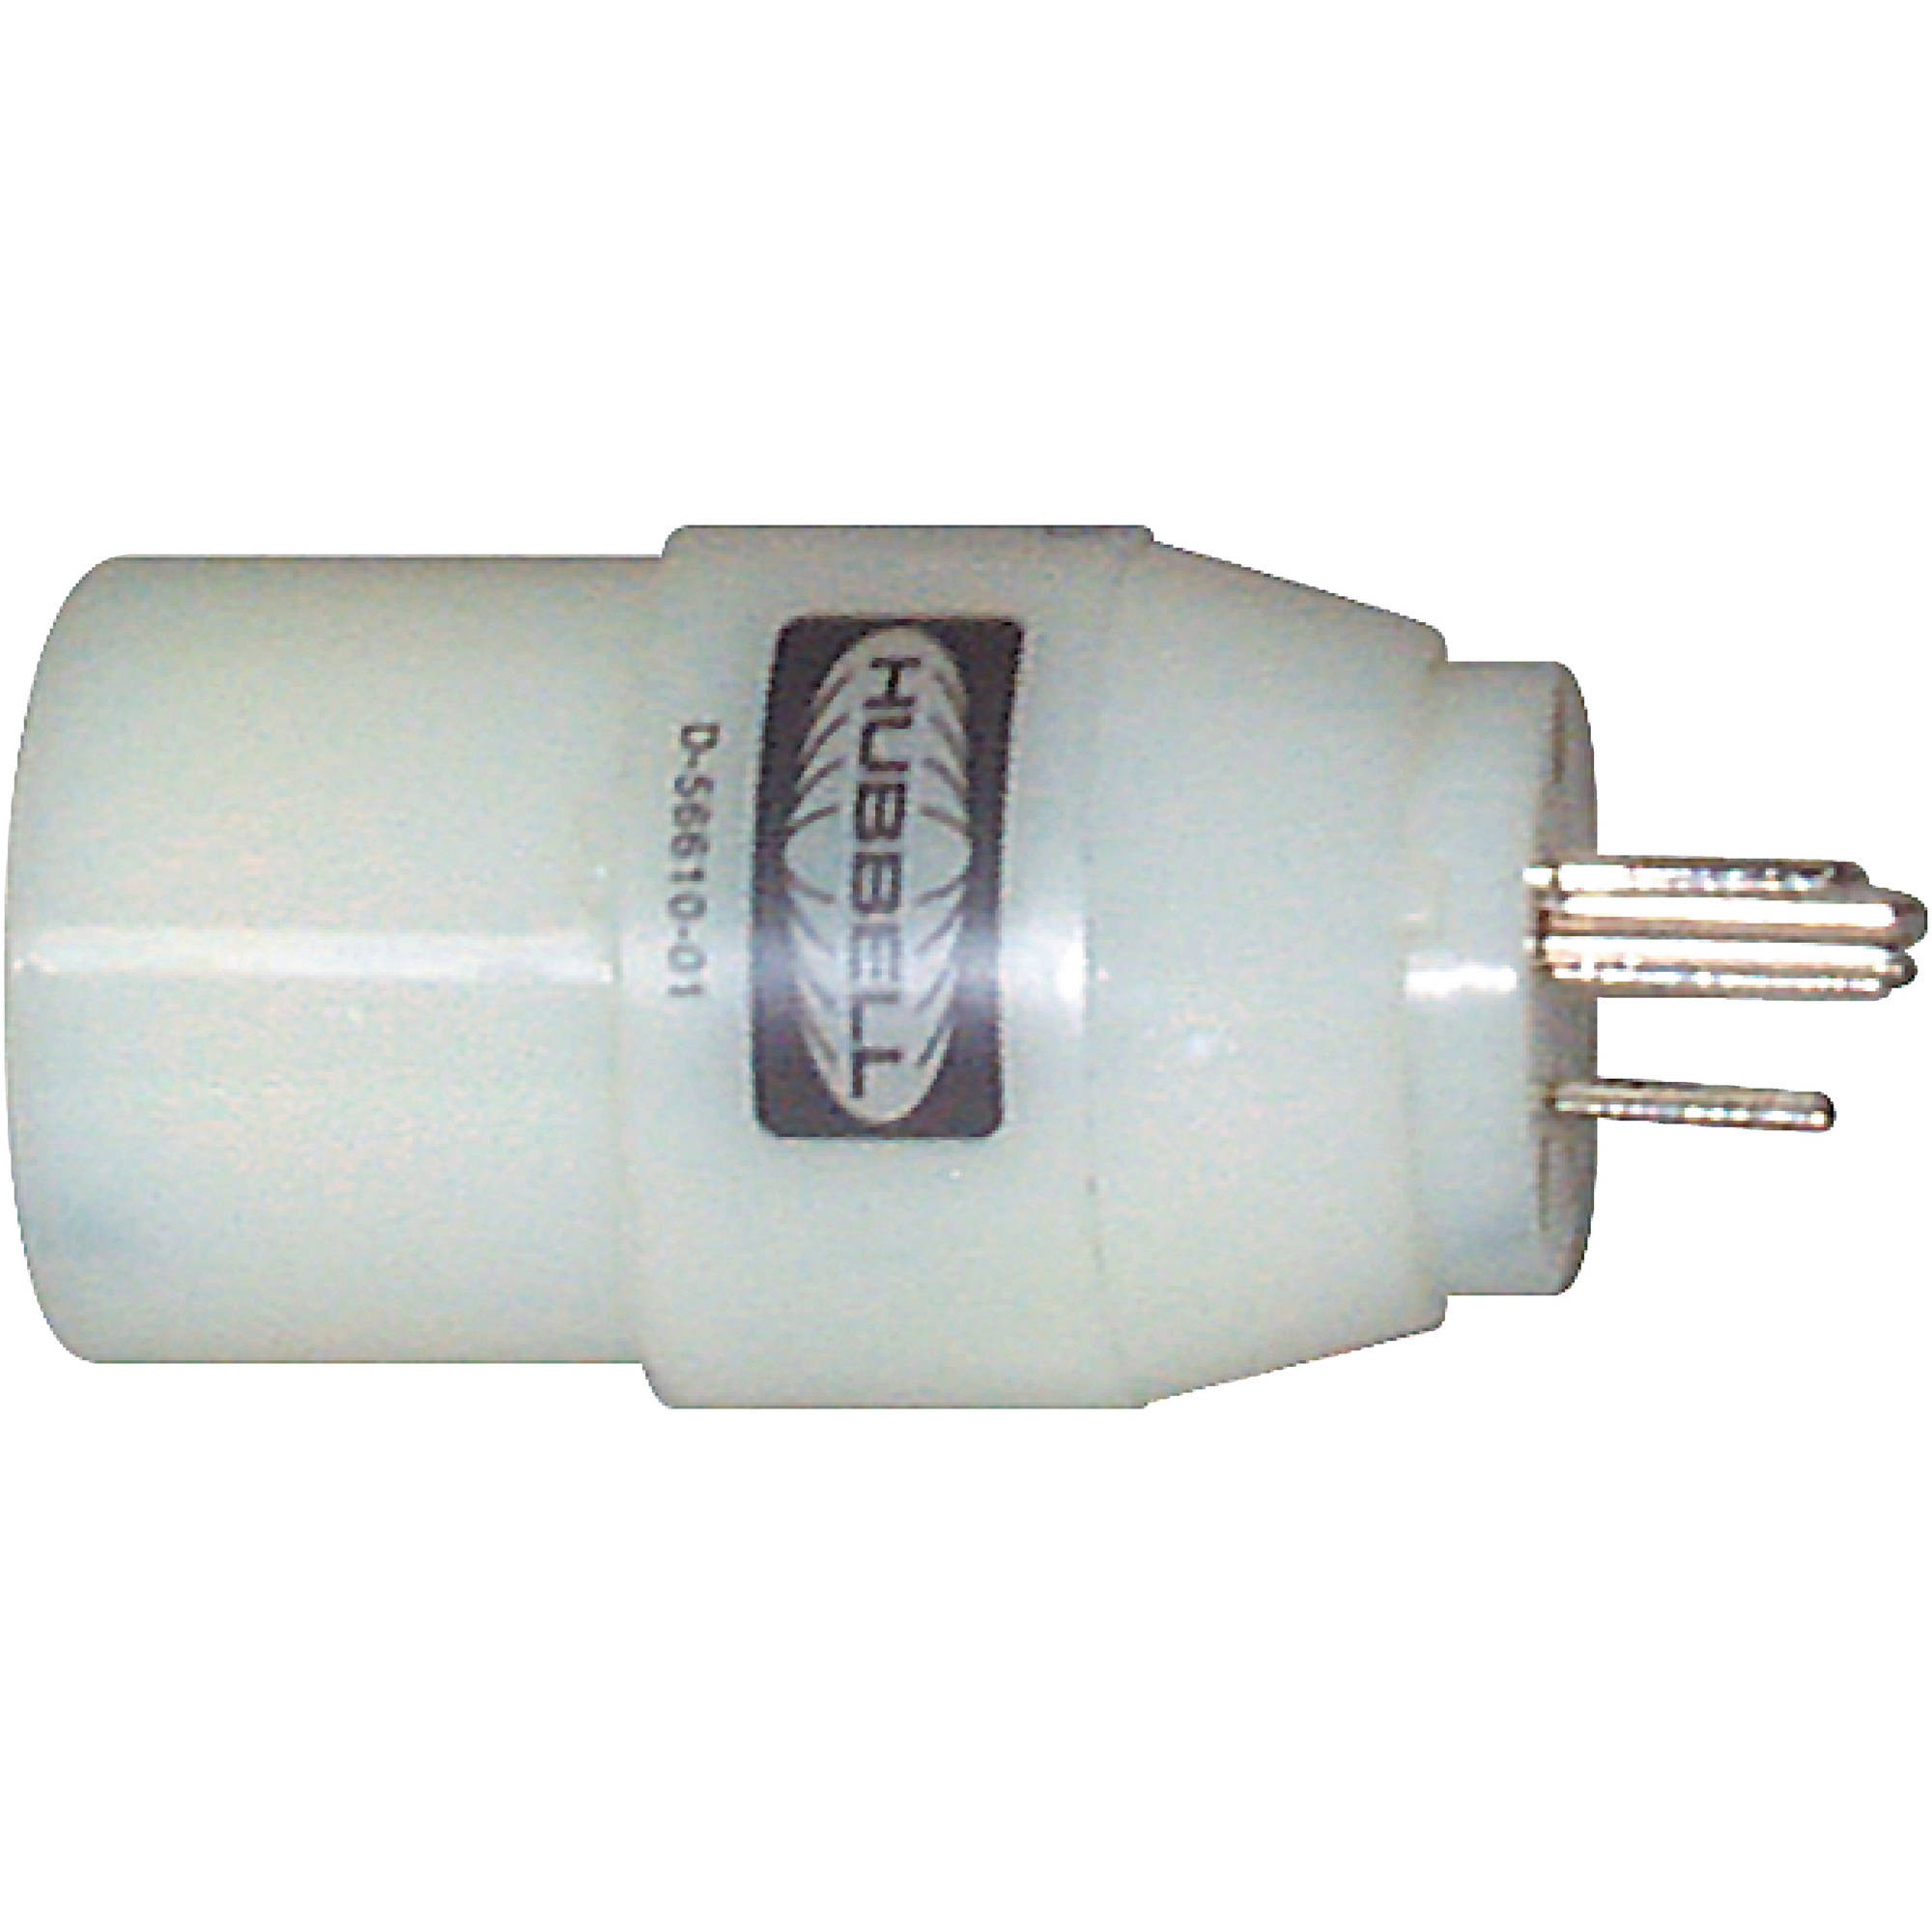 Hubbell HBL31CM28 White 30A 125V Twist Lock Female to 15A 125V ...